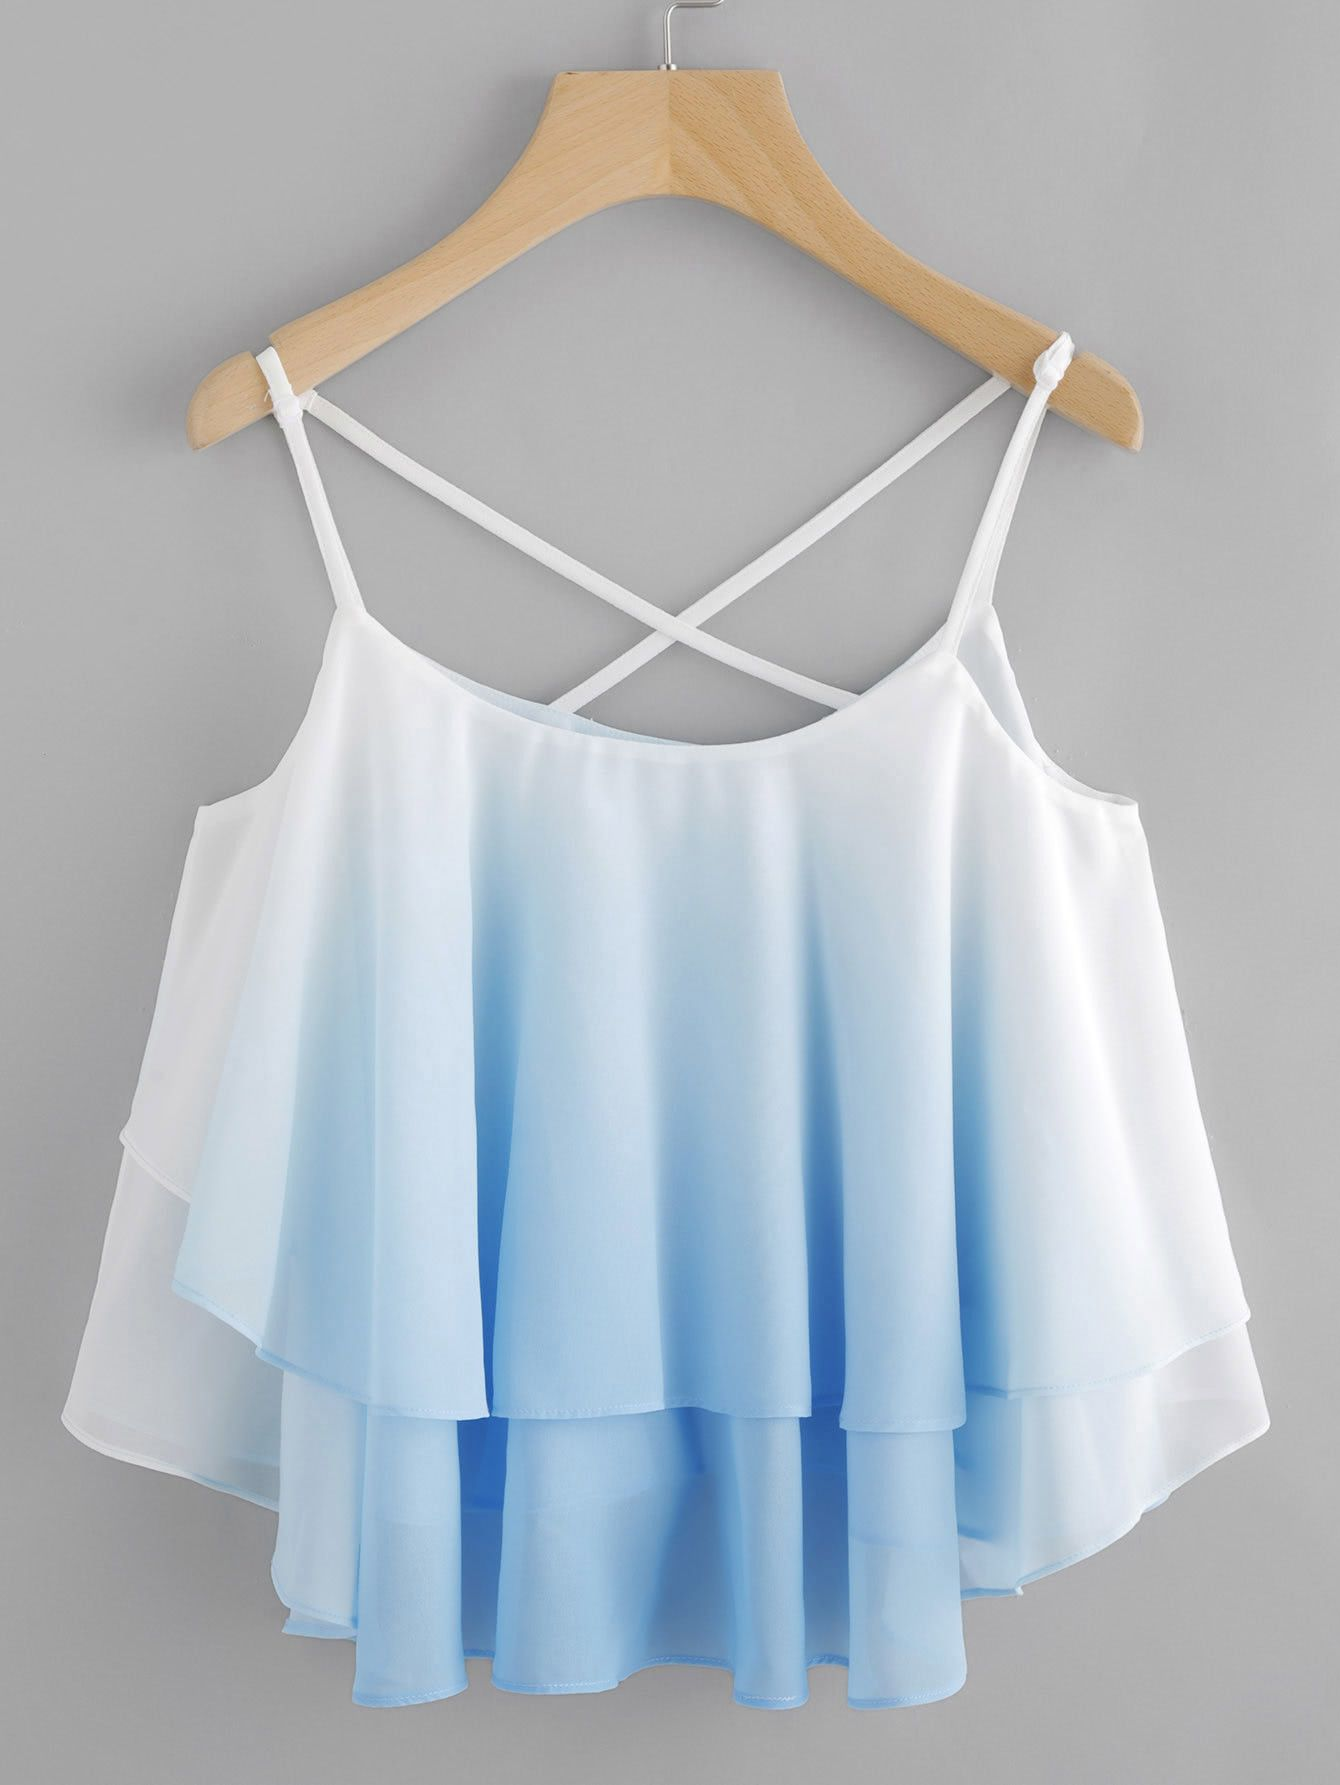 828dbb41f05a1 Shop Ombre Crisscross Layered Swing Cami Top online. SheIn offers Ombre  Crisscross Layered Swing Cami Top   more to fit your fashionable needs.